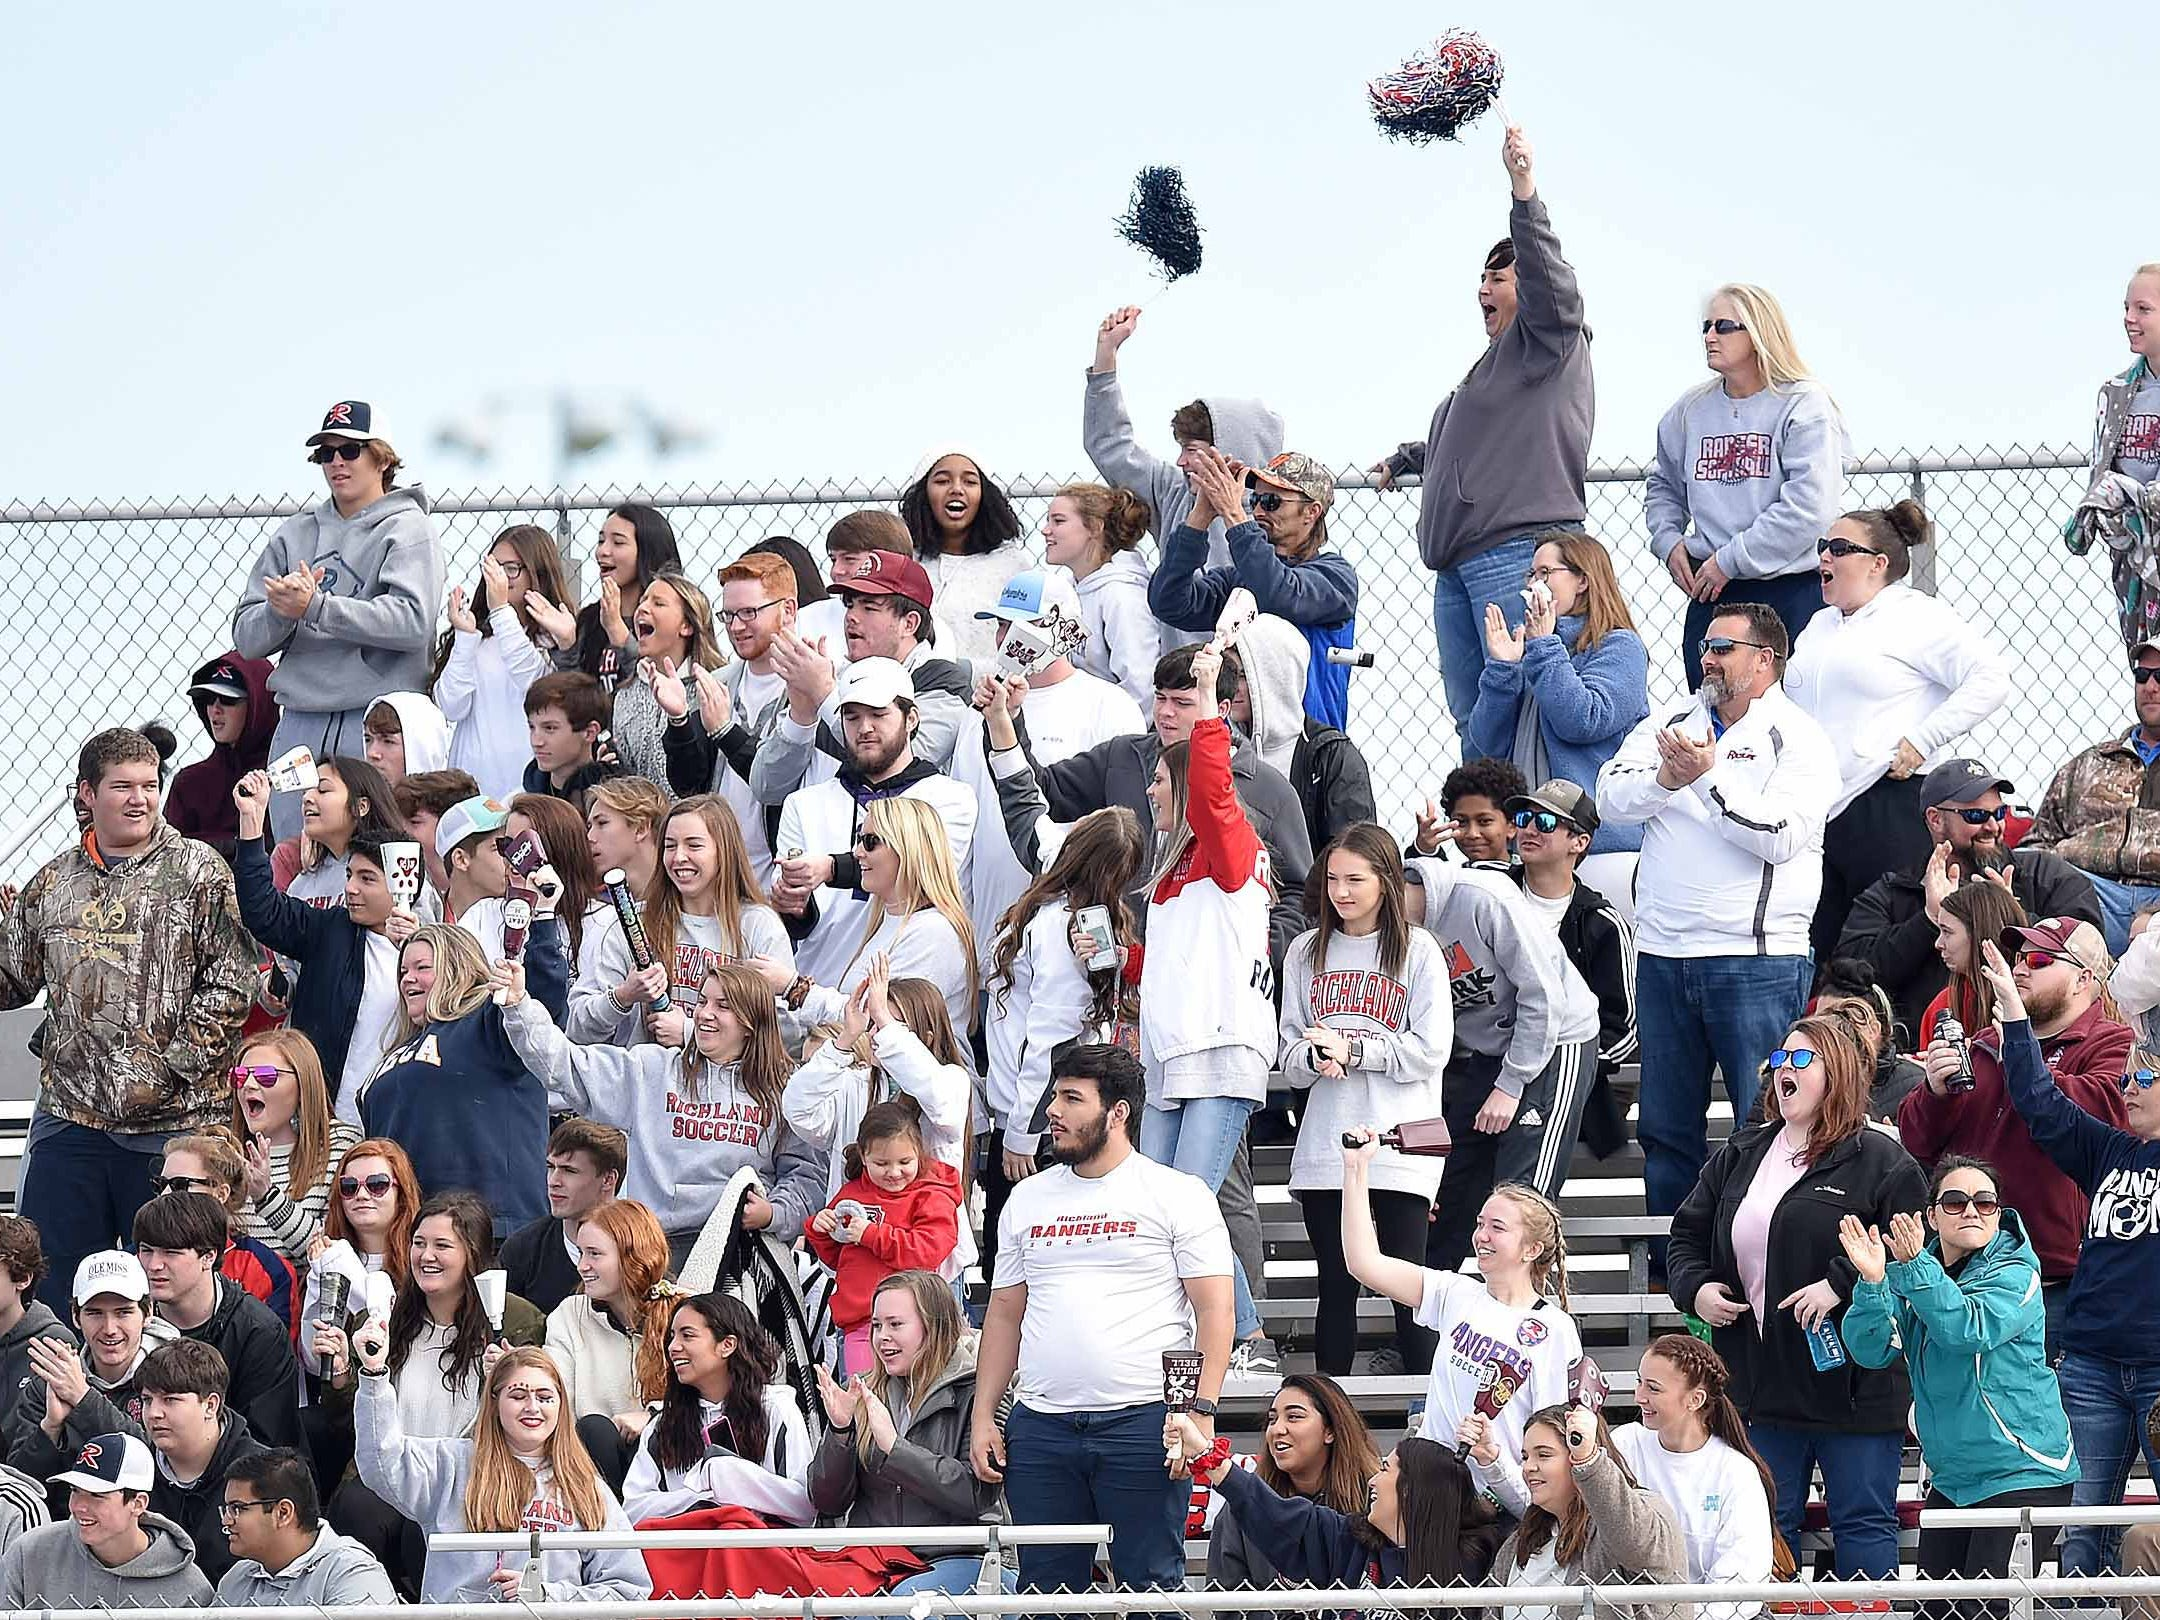 The Richland fans cheer after an Eagles goal against West Lauderdale in the Class 4A state championship in the MHSAA BlueCross Blue Shield of Mississippi Soccer Classic on Saturday, February 9, 2019, at Ridgeland High School in Ridgeland, Miss.